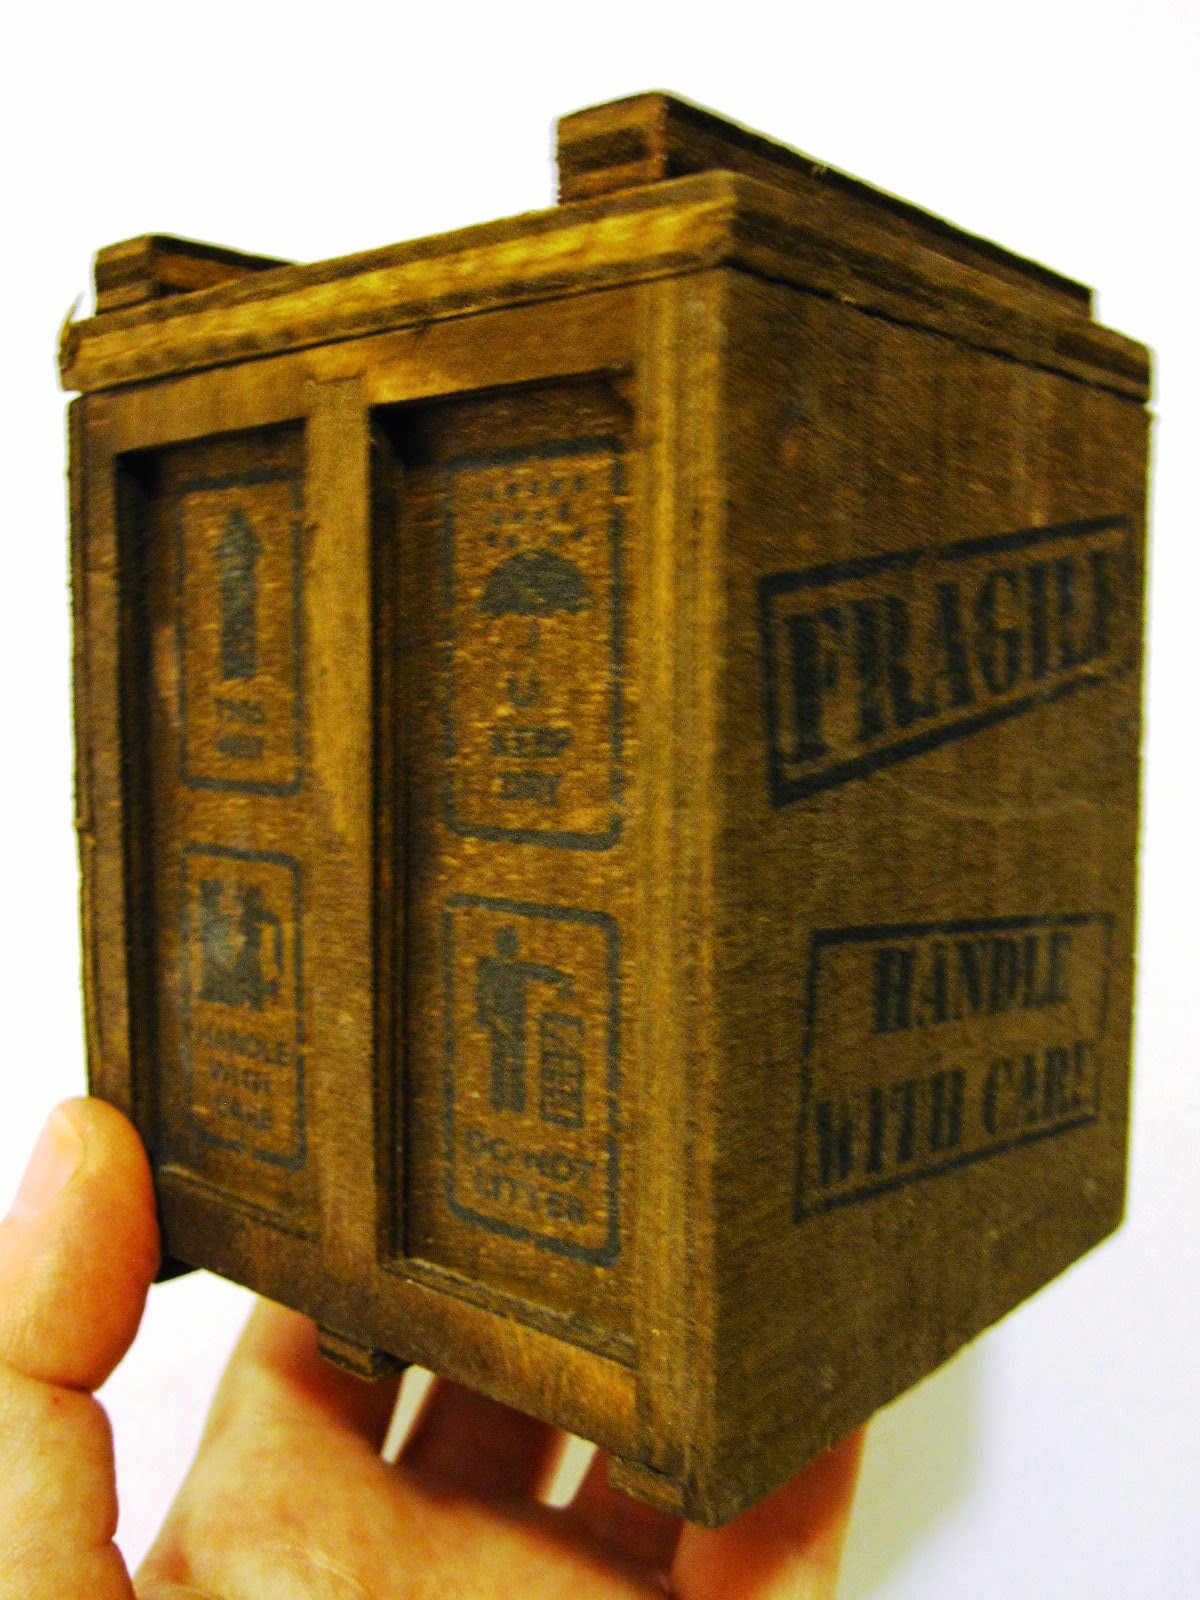 A hand holding up a miniature wooden packing crate.